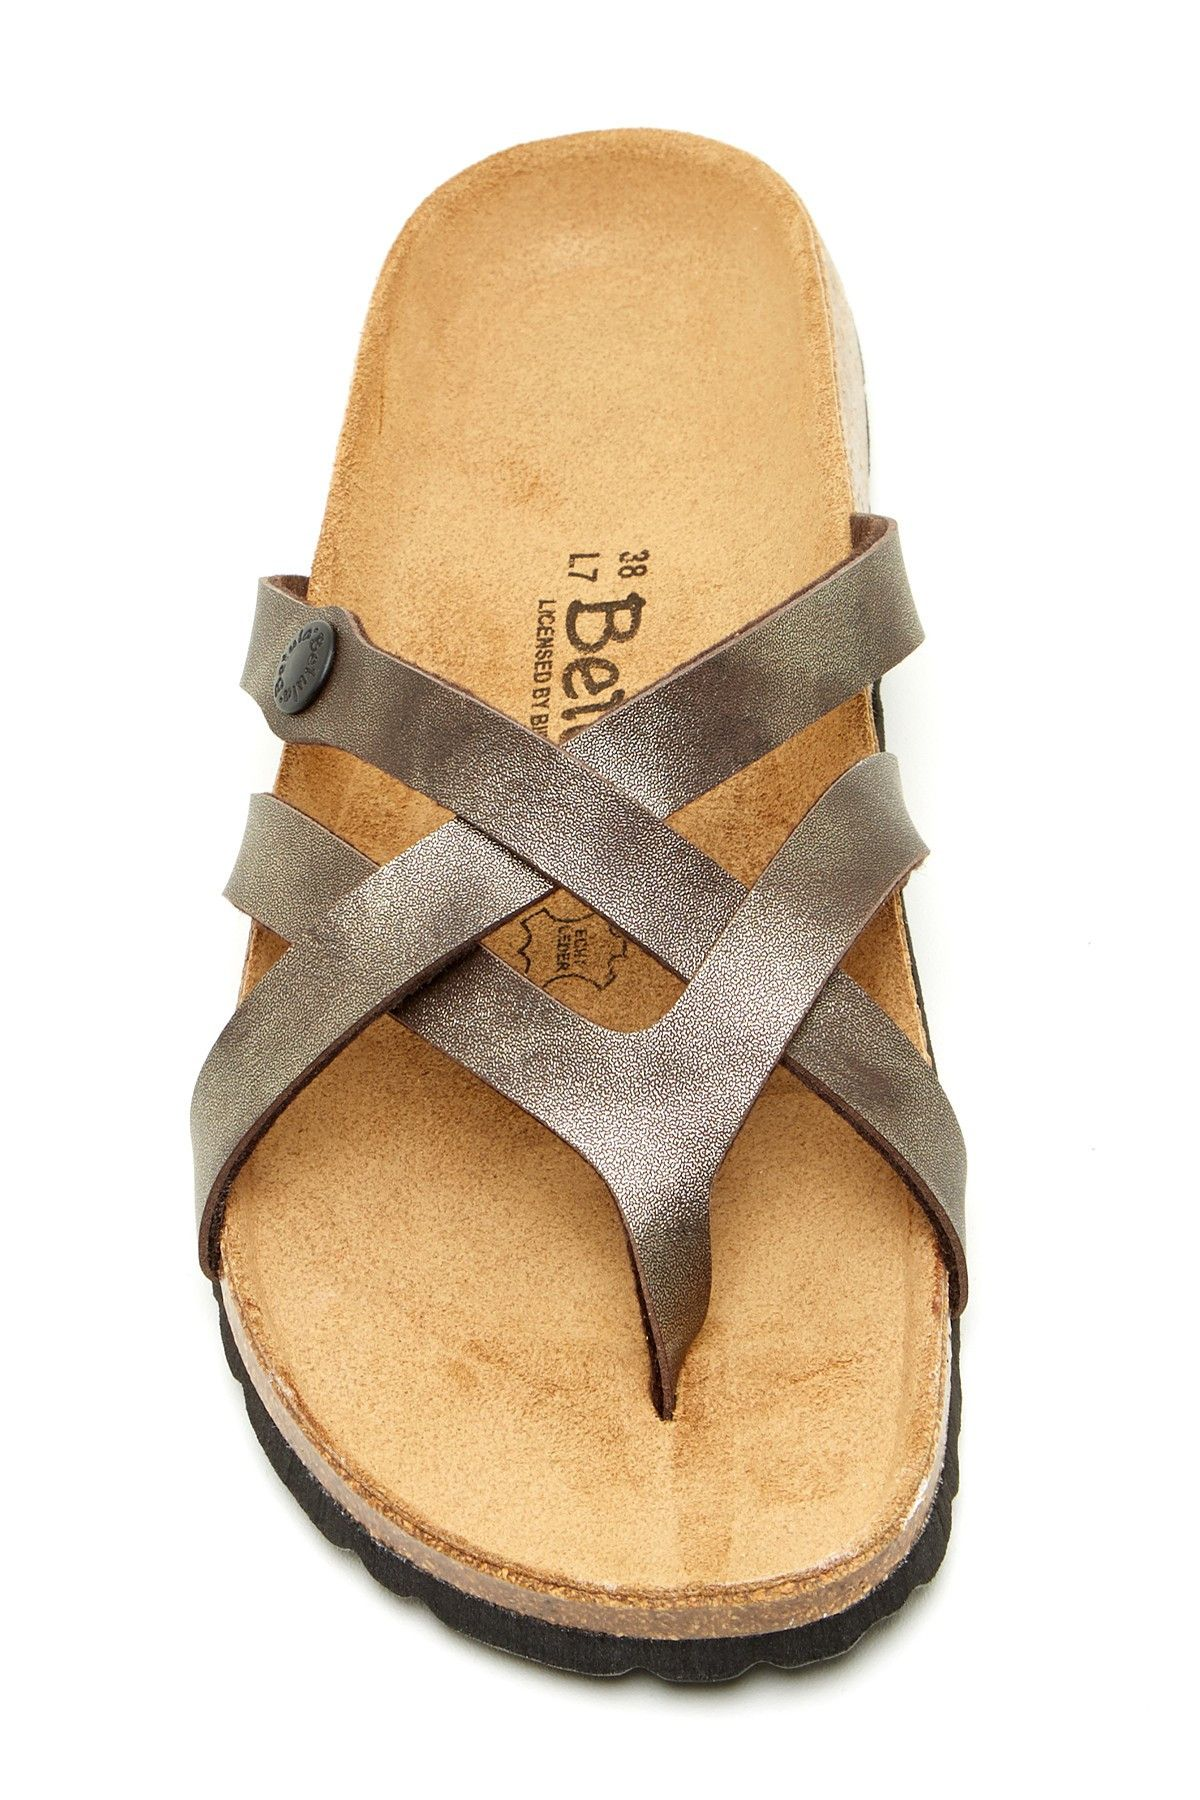 041ef4a6e0a4 Betula by Birkenstock - Vinja Sandal at Nordstrom Rack. Free Shipping on  orders over  100.